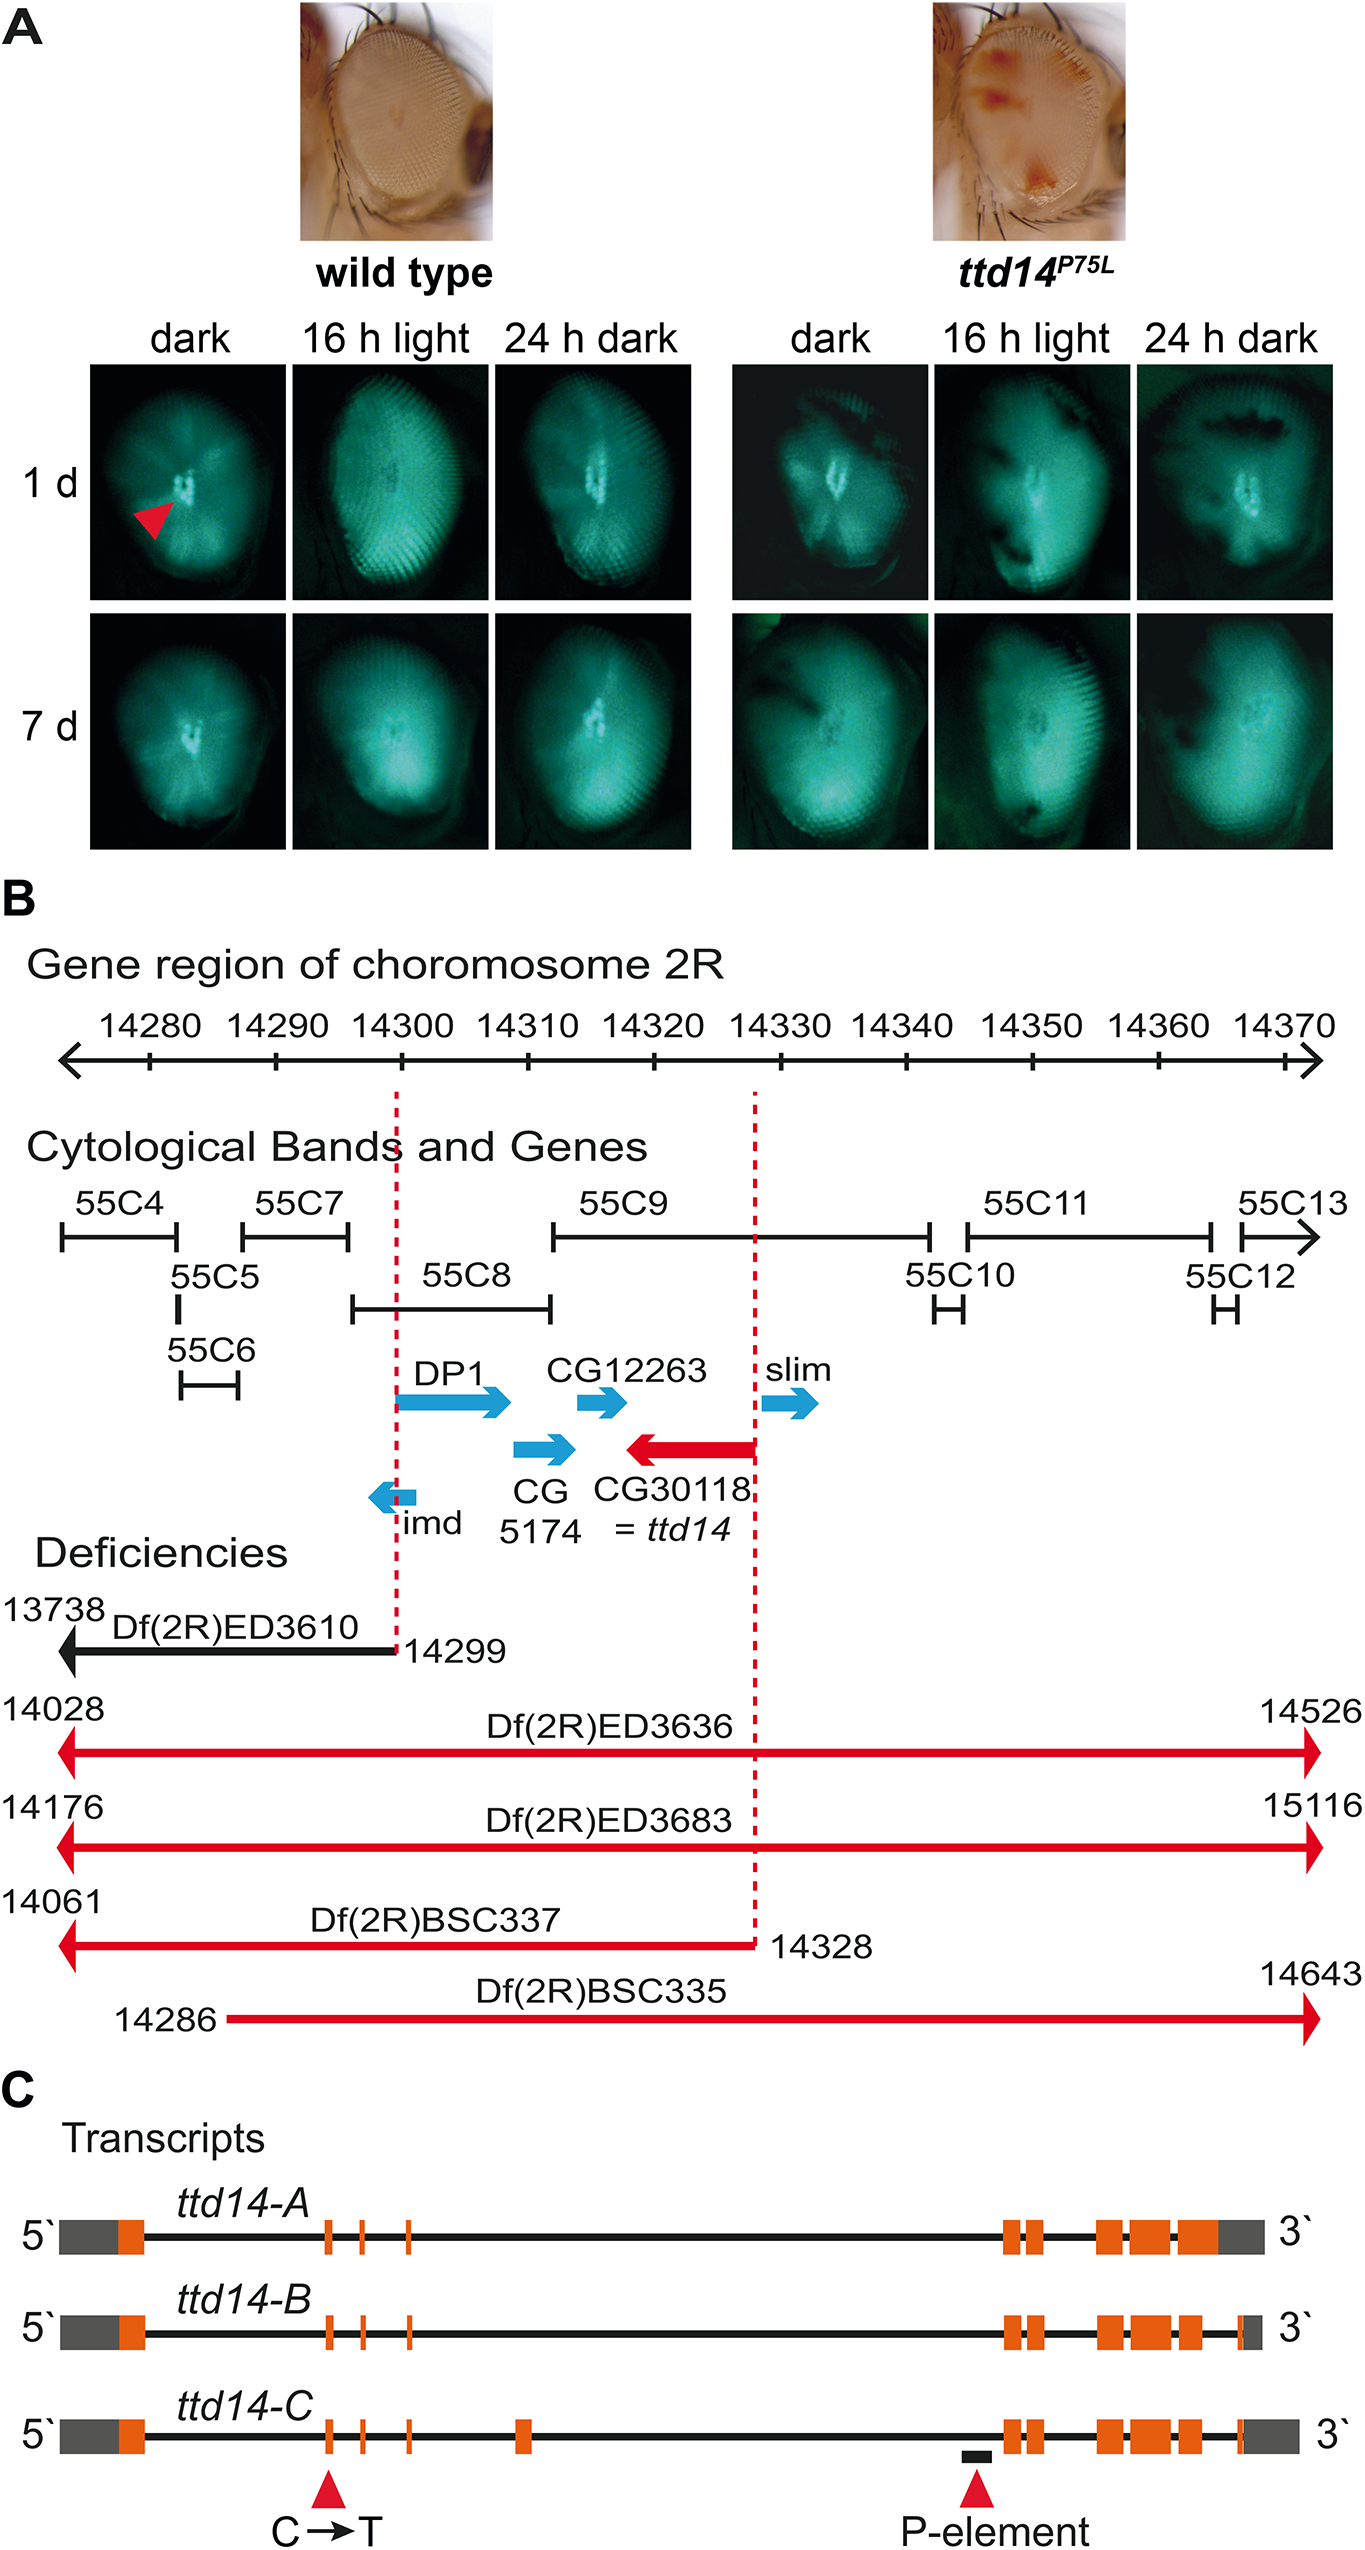 Deficiency mapping of the <i>ttd14</i> locus.